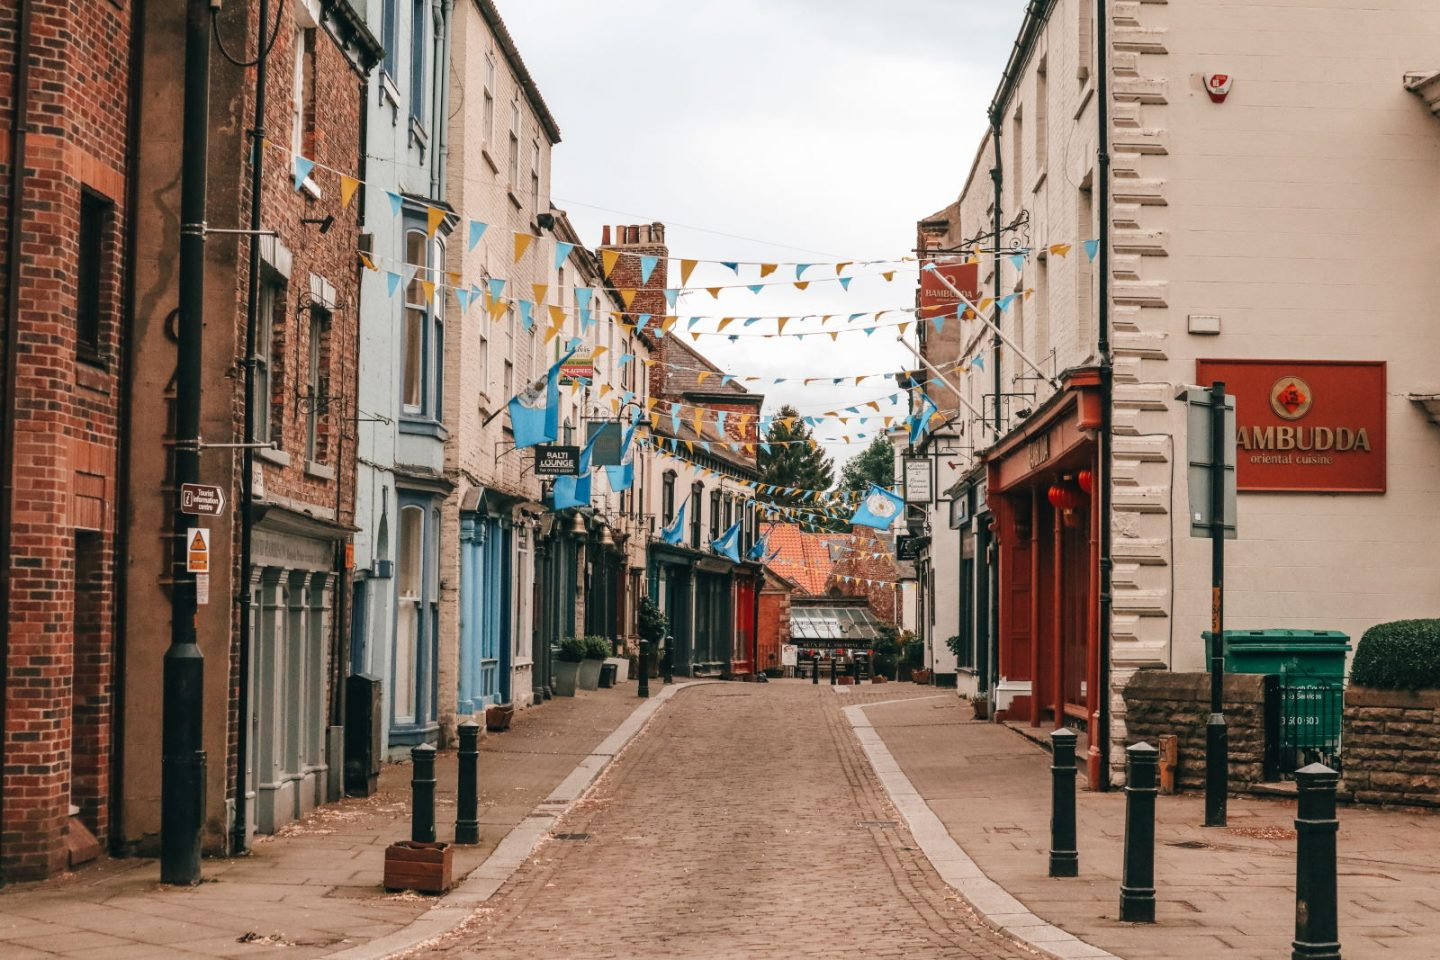 Visiting the medieval streets is one of the best things to do in Ripon